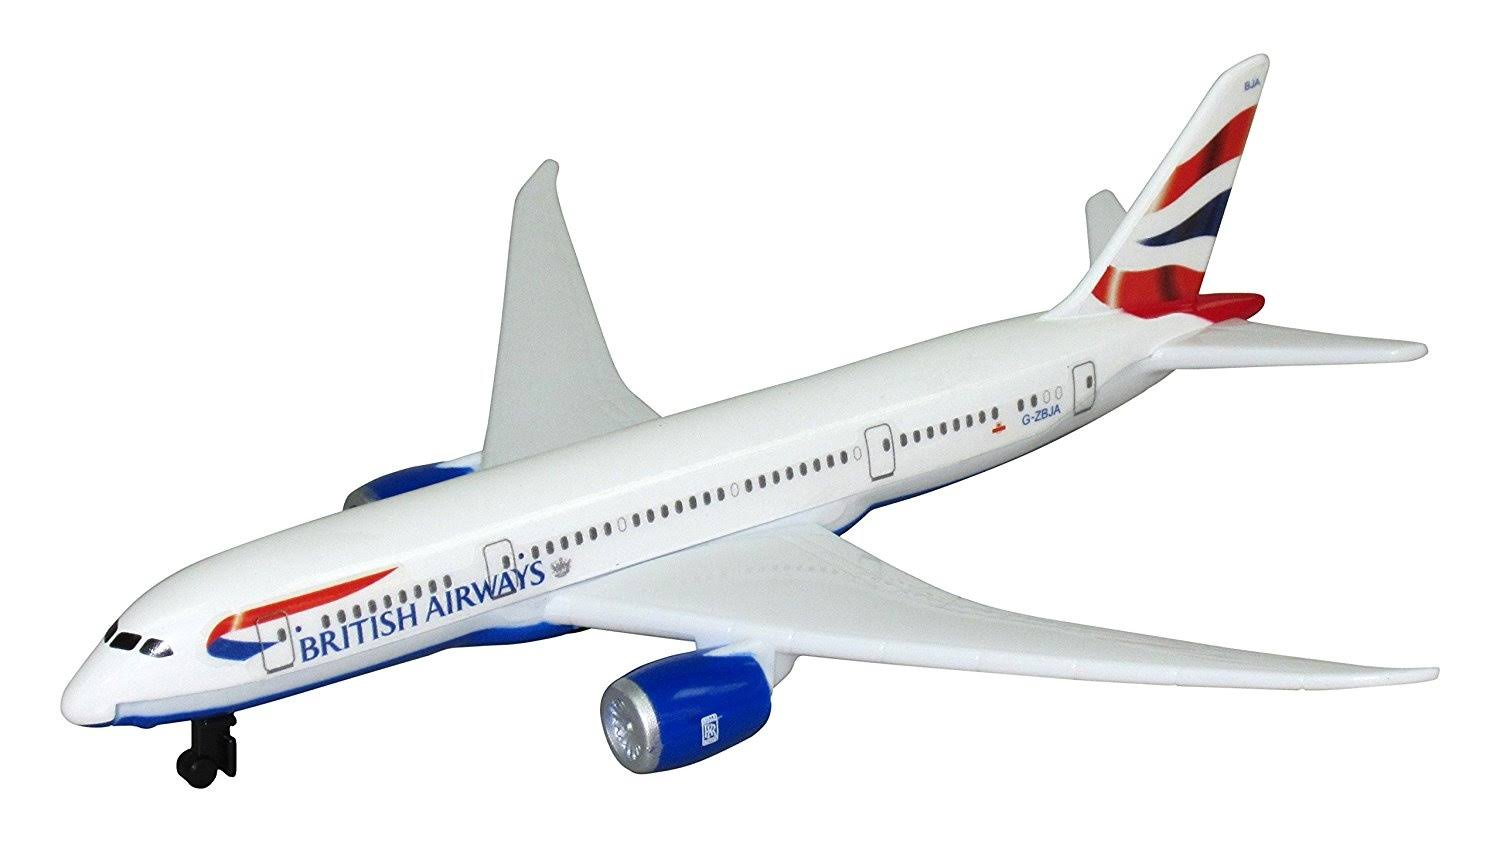 Daron Rt6005 British Airways 787 Single Plane